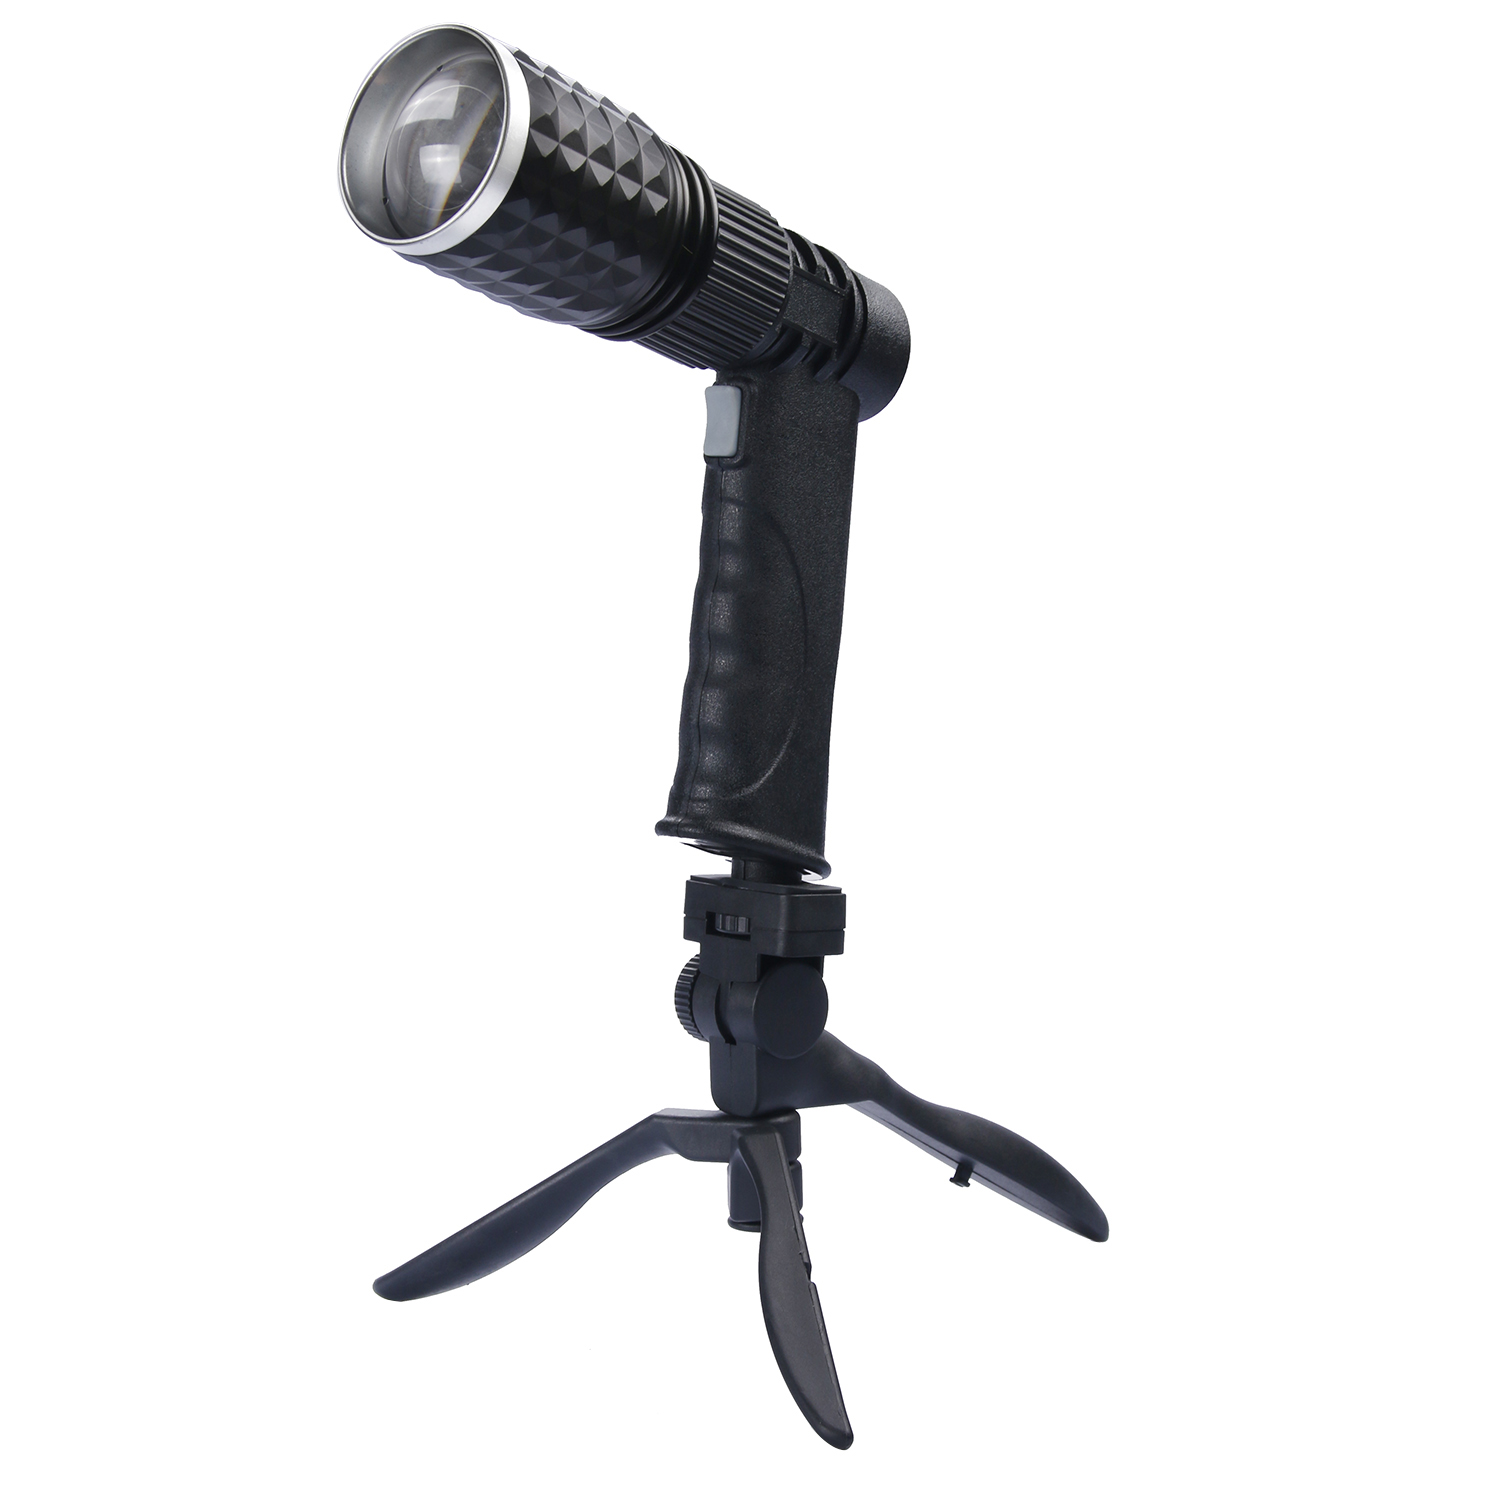 Super Bright New Zoomable XM-L T6 LED Flashlight Torch Light Stand Power Bank for your phone outdoor + USB Charger+ holder cree xm l t6 bicycle light 6000lumens bike light 7modes torch zoomable led flashlight 18650 battery charger bicycle clip